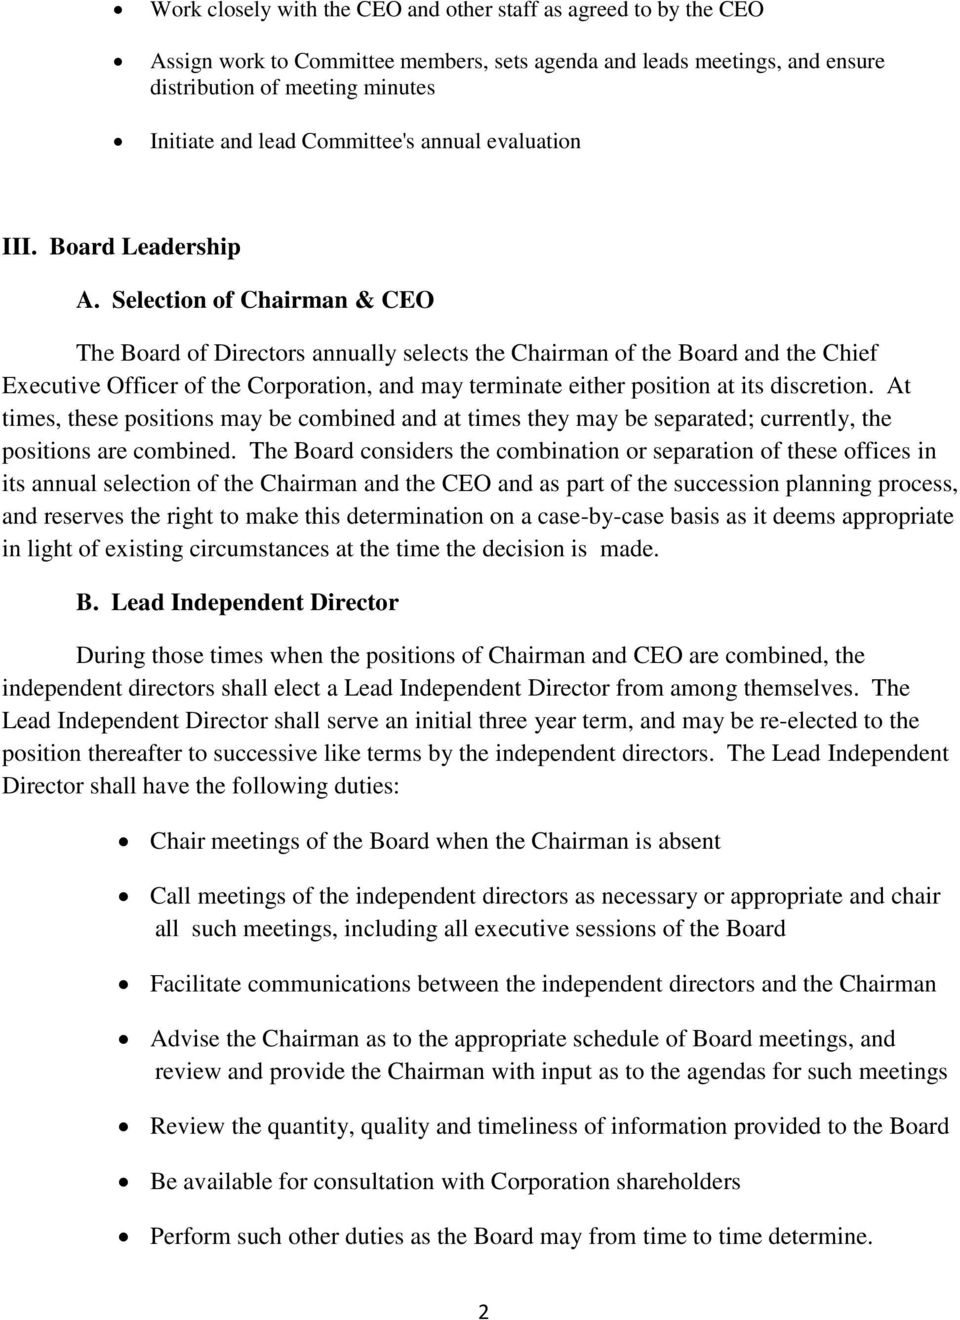 Selection of Chairman & CEO The Board of Directors annually selects the Chairman of the Board and the Chief Executive Officer of the Corporation, and may terminate either position at its discretion.